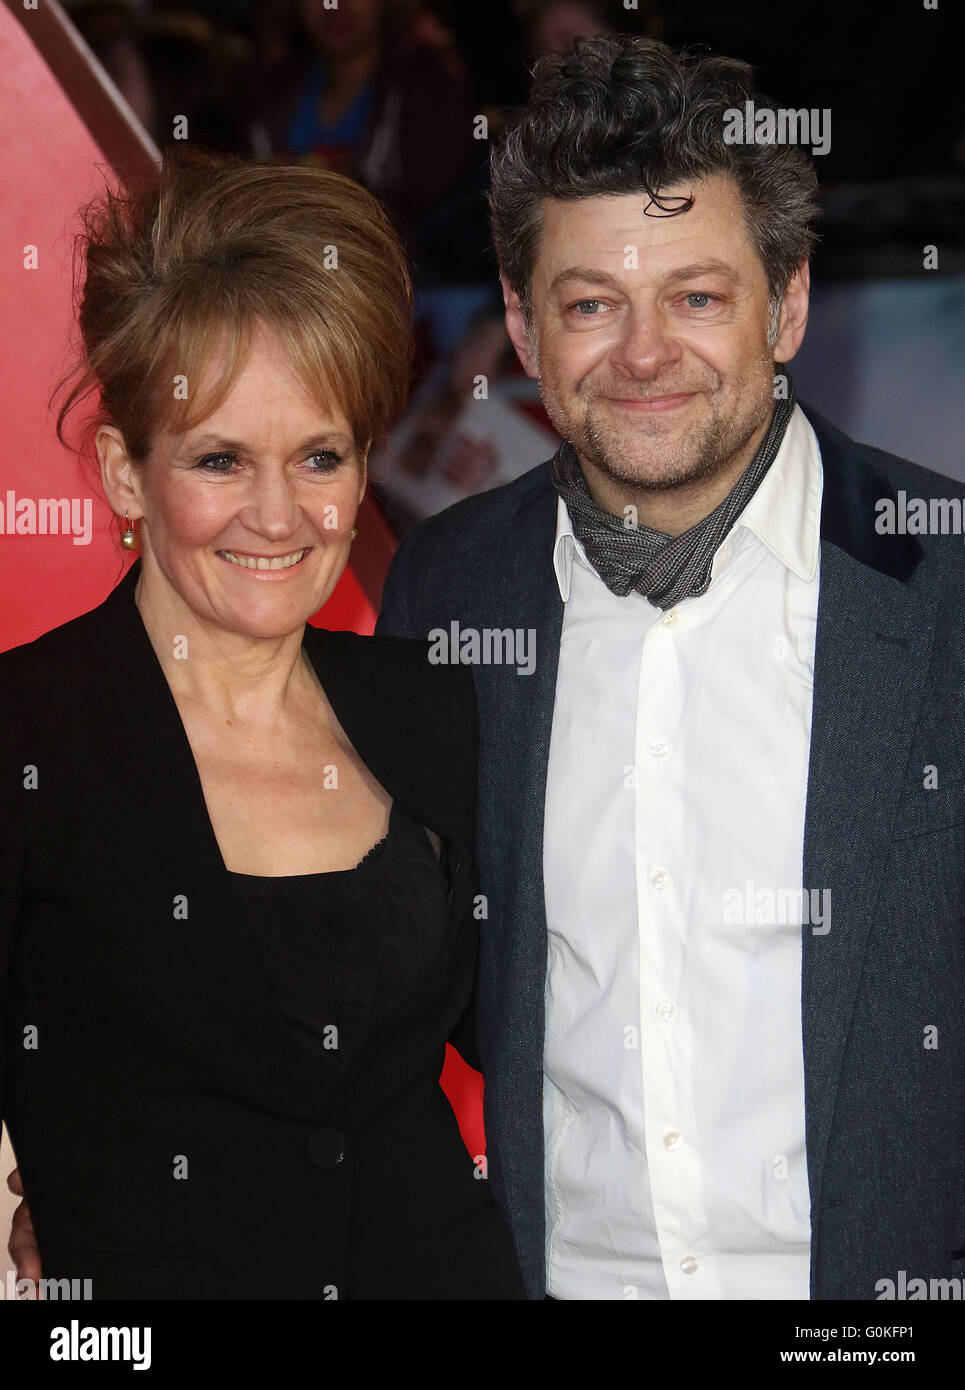 March 22, 2016 - Andy Serkis and Lorraine Ashbourne attending The European Premiere of 'Batman V Superman: Dawn - Stock Image